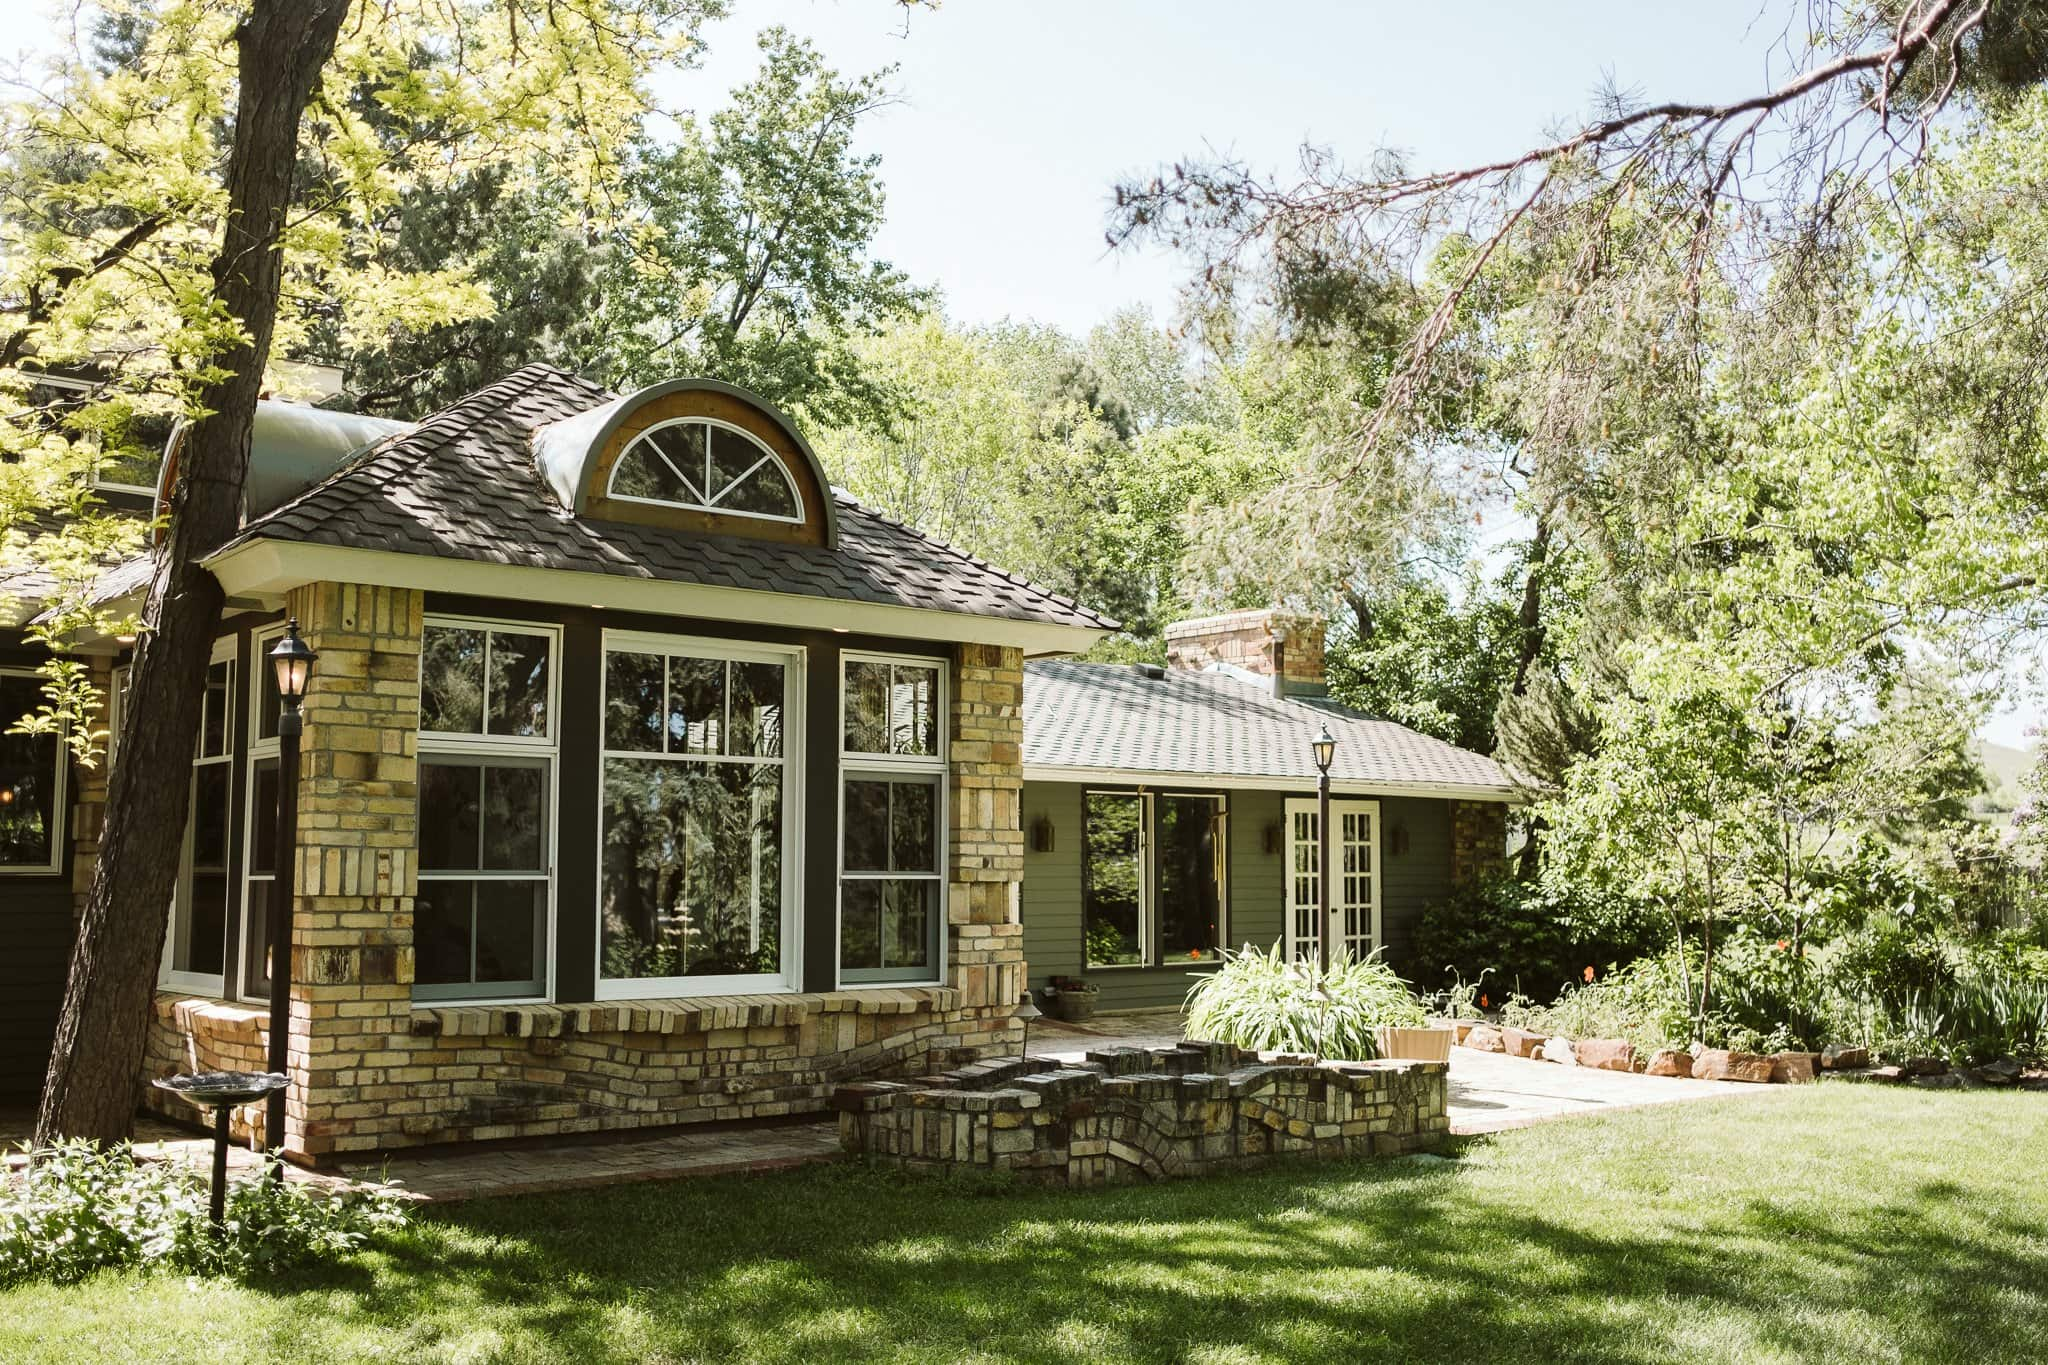 haystack-hearth-wedding-venue-niwot-6